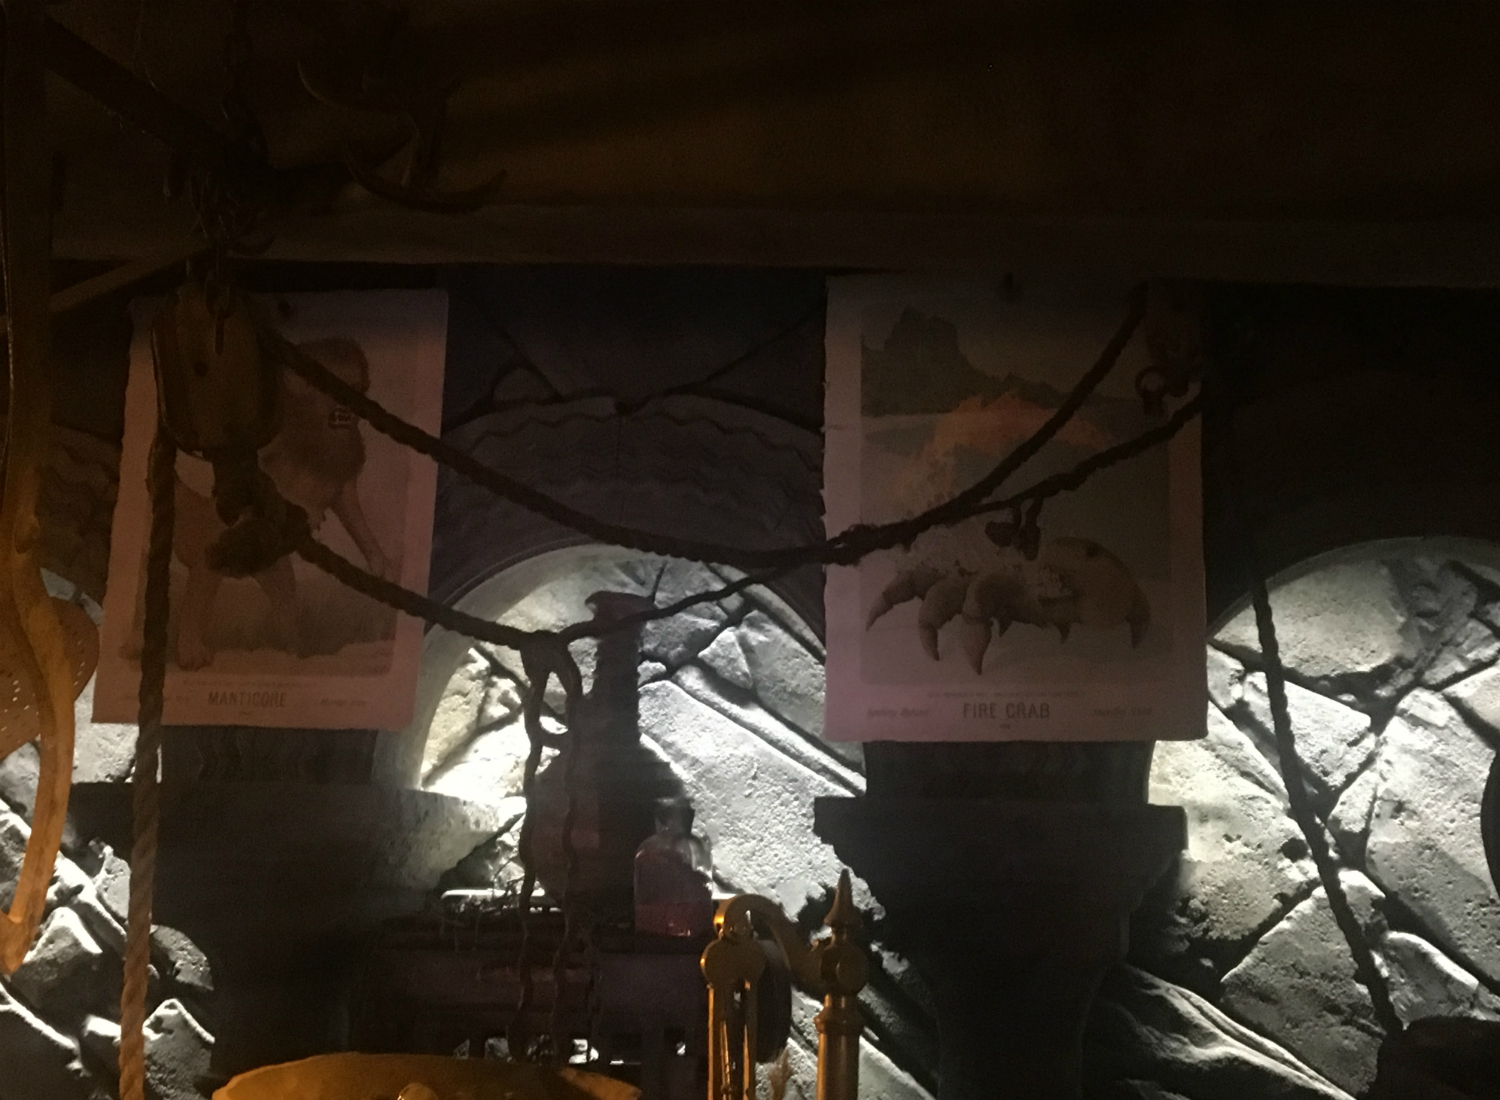 The Fire Crab and manticore illustrations are hung directly behind Hagrid's work table, where they are easily accessible for research purposes.